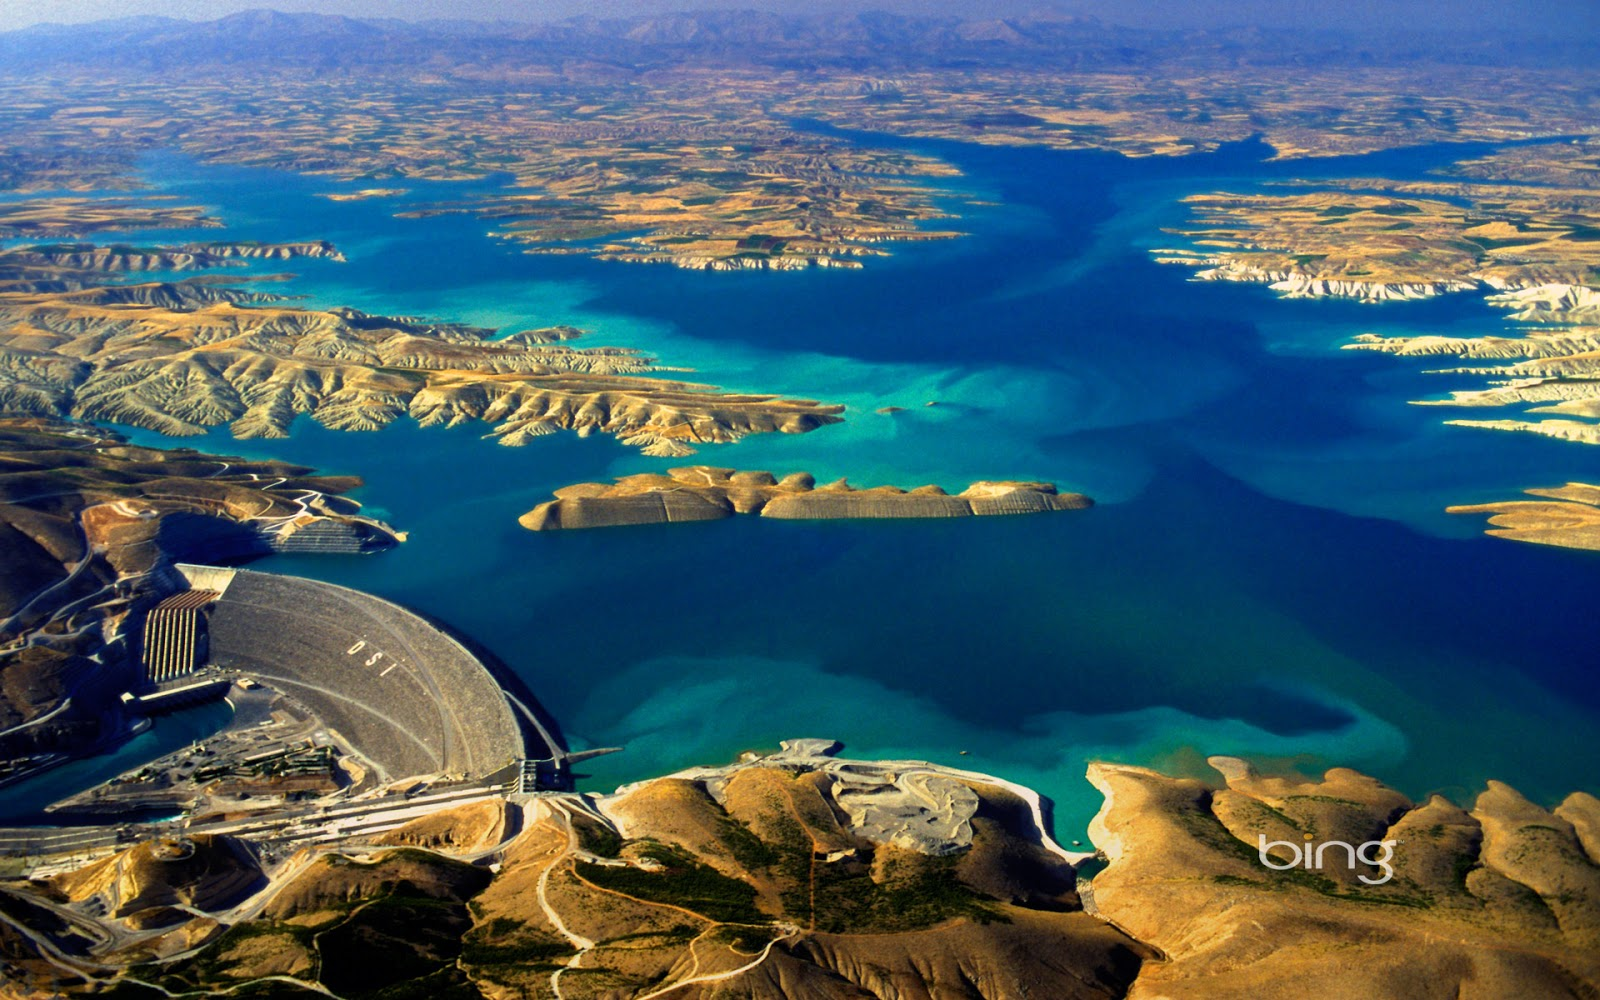 Aerial view of the Ataturk Dam on the Euphrates River Turkey Ed 1600x1000